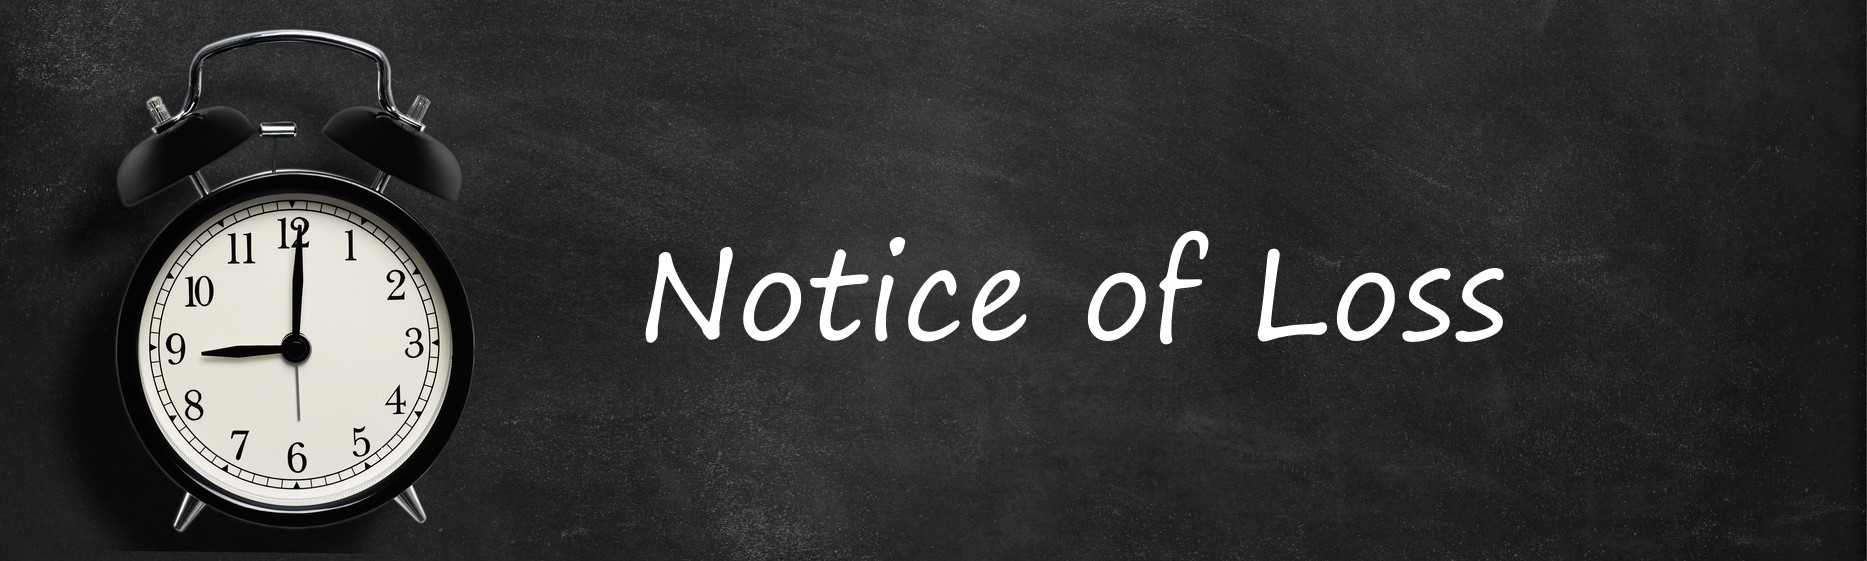 notice-of-loss-Chalkboard-with-clock-iStock-847125972